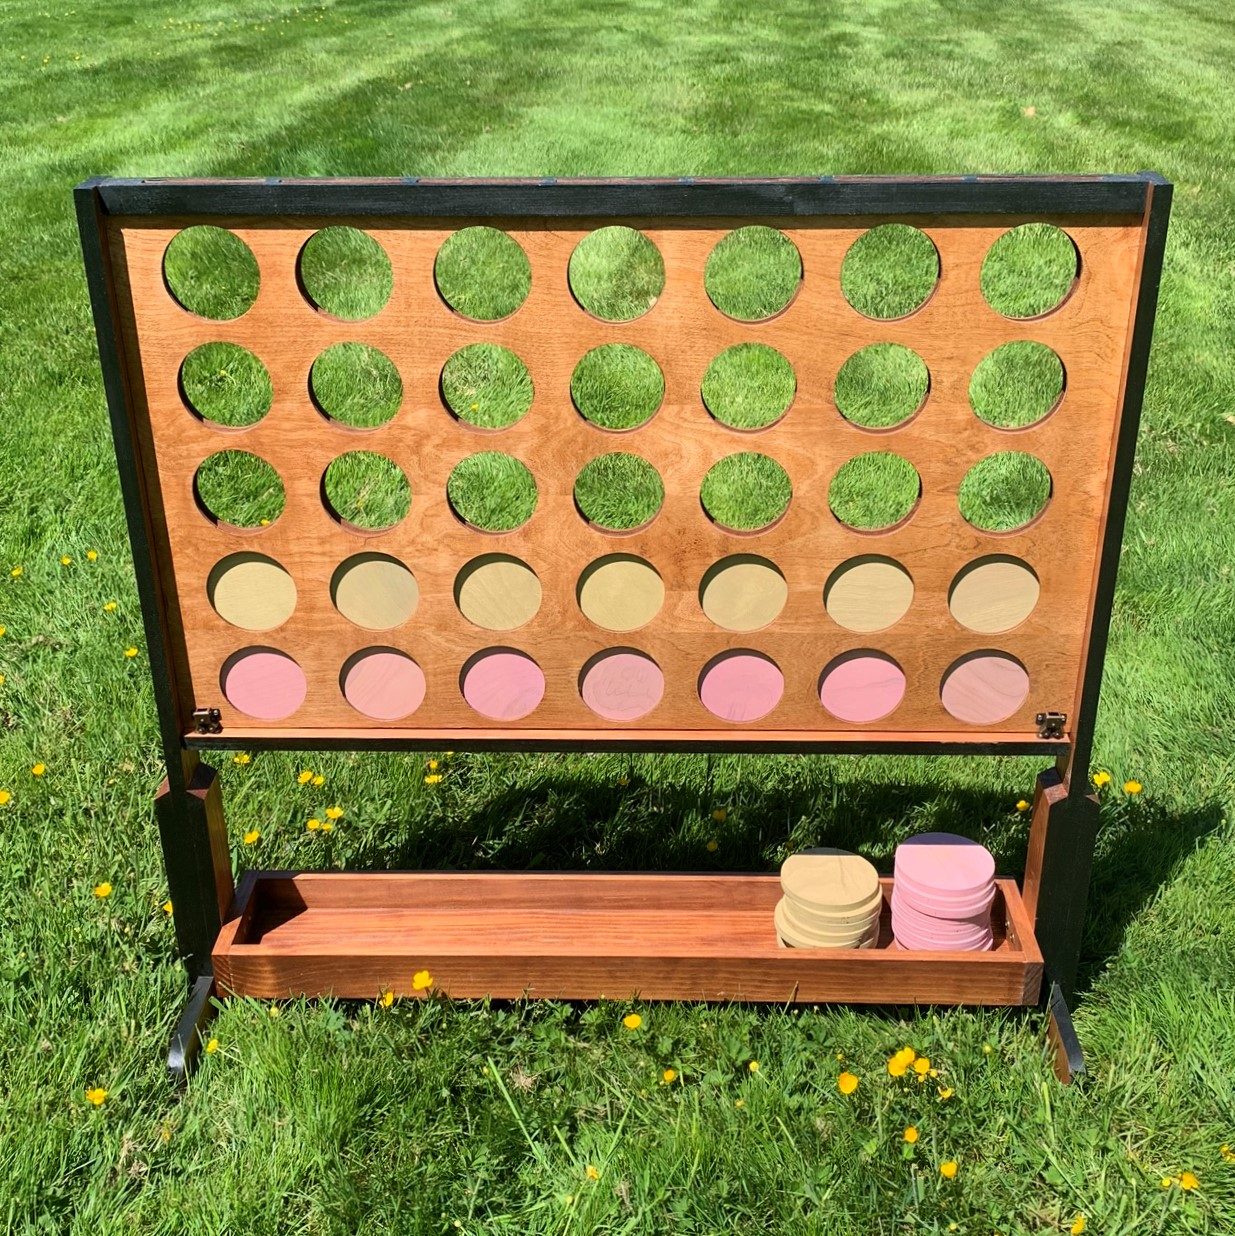 Giant Connect 4 .jpeg